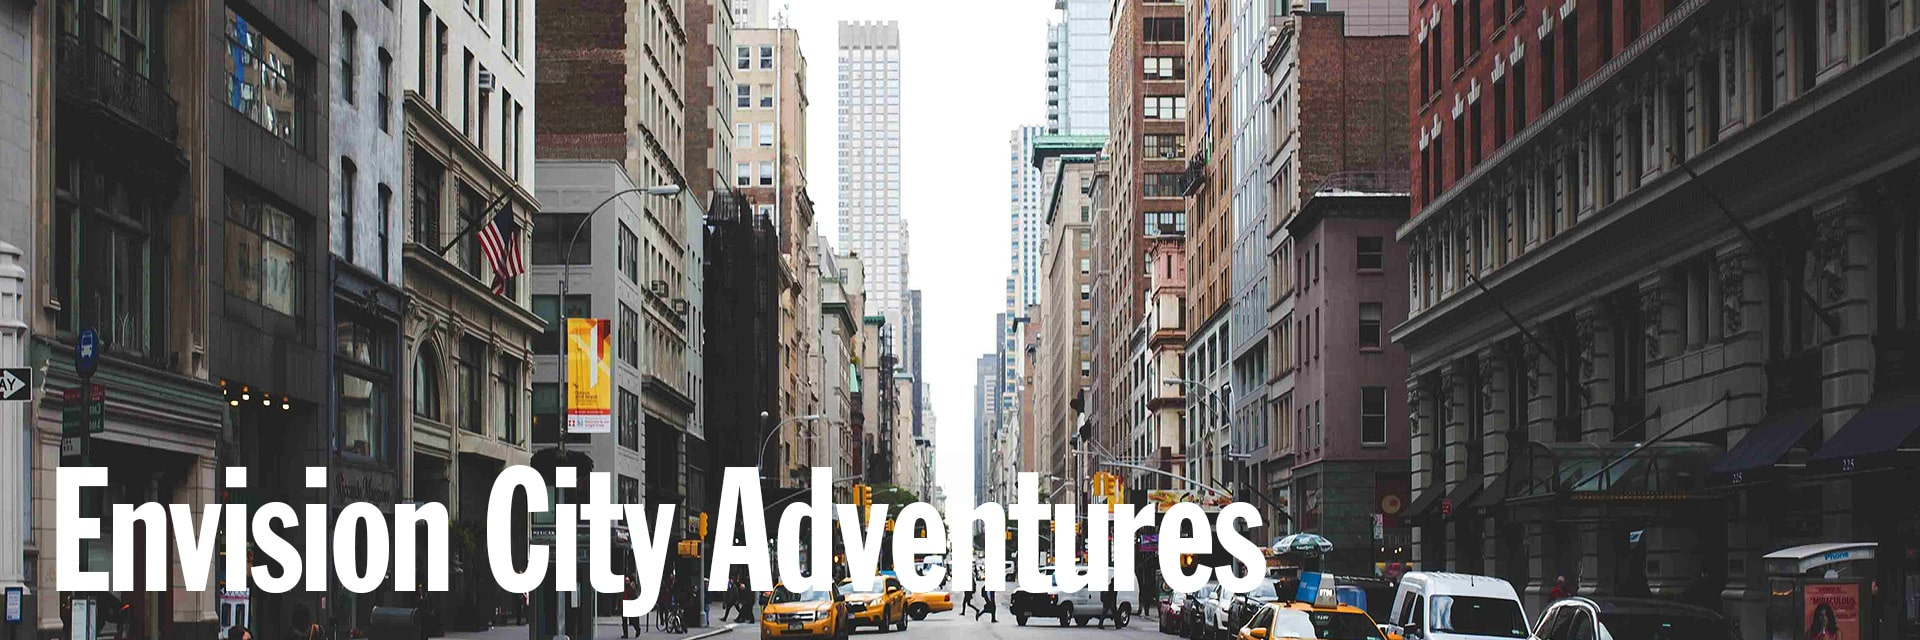 Envision New York City Adventures